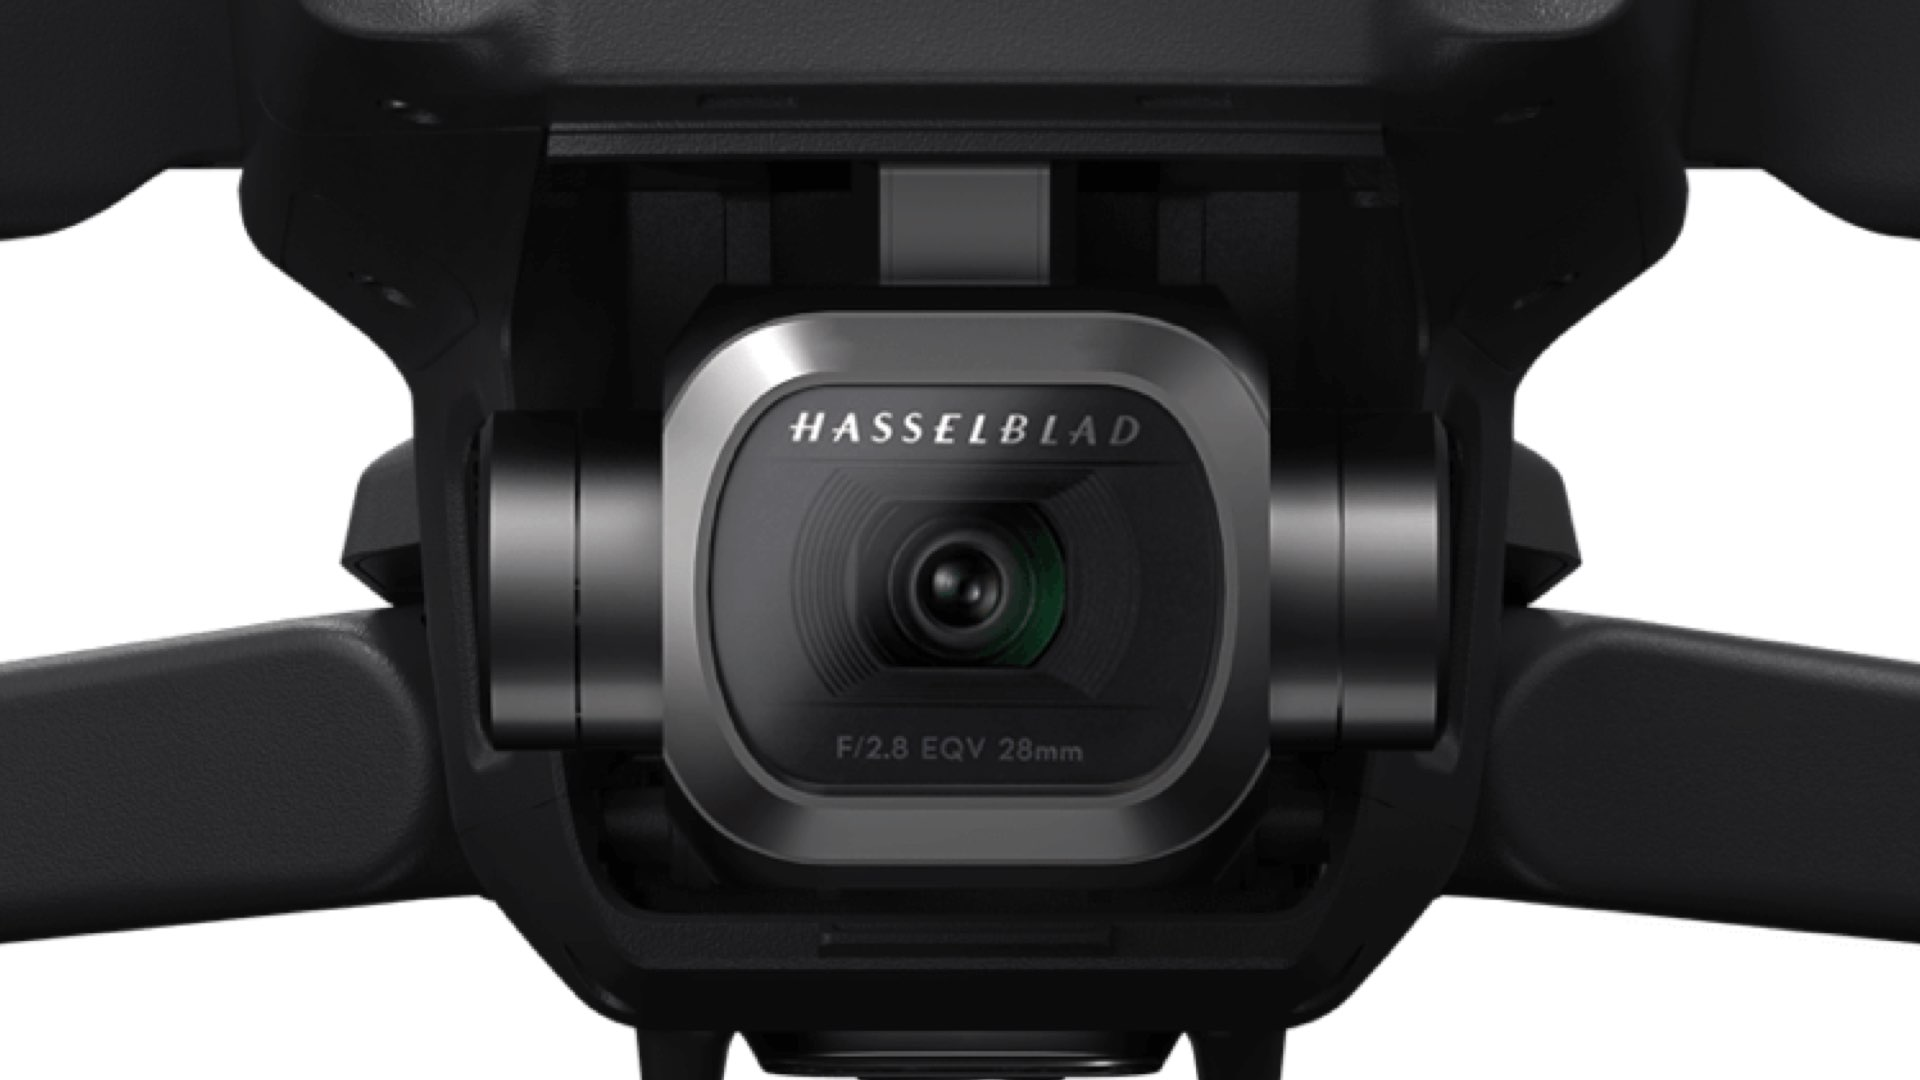 Hasselblad L1D-20C: Most Important Feature of the DJI Mavic